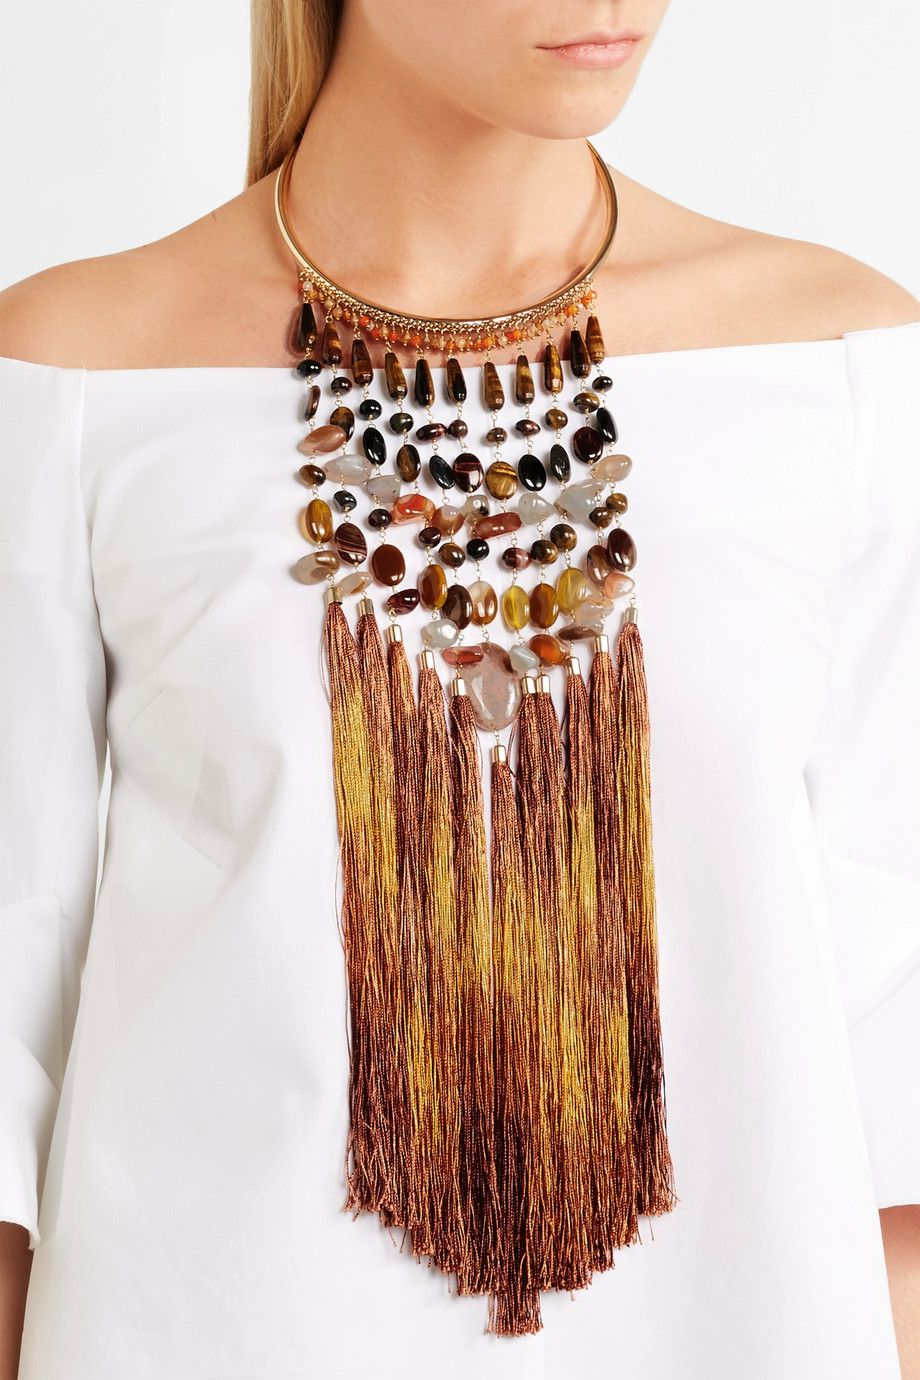 Rum Tasseled Gold-tone Beaded Necklace - Brown Rosantica